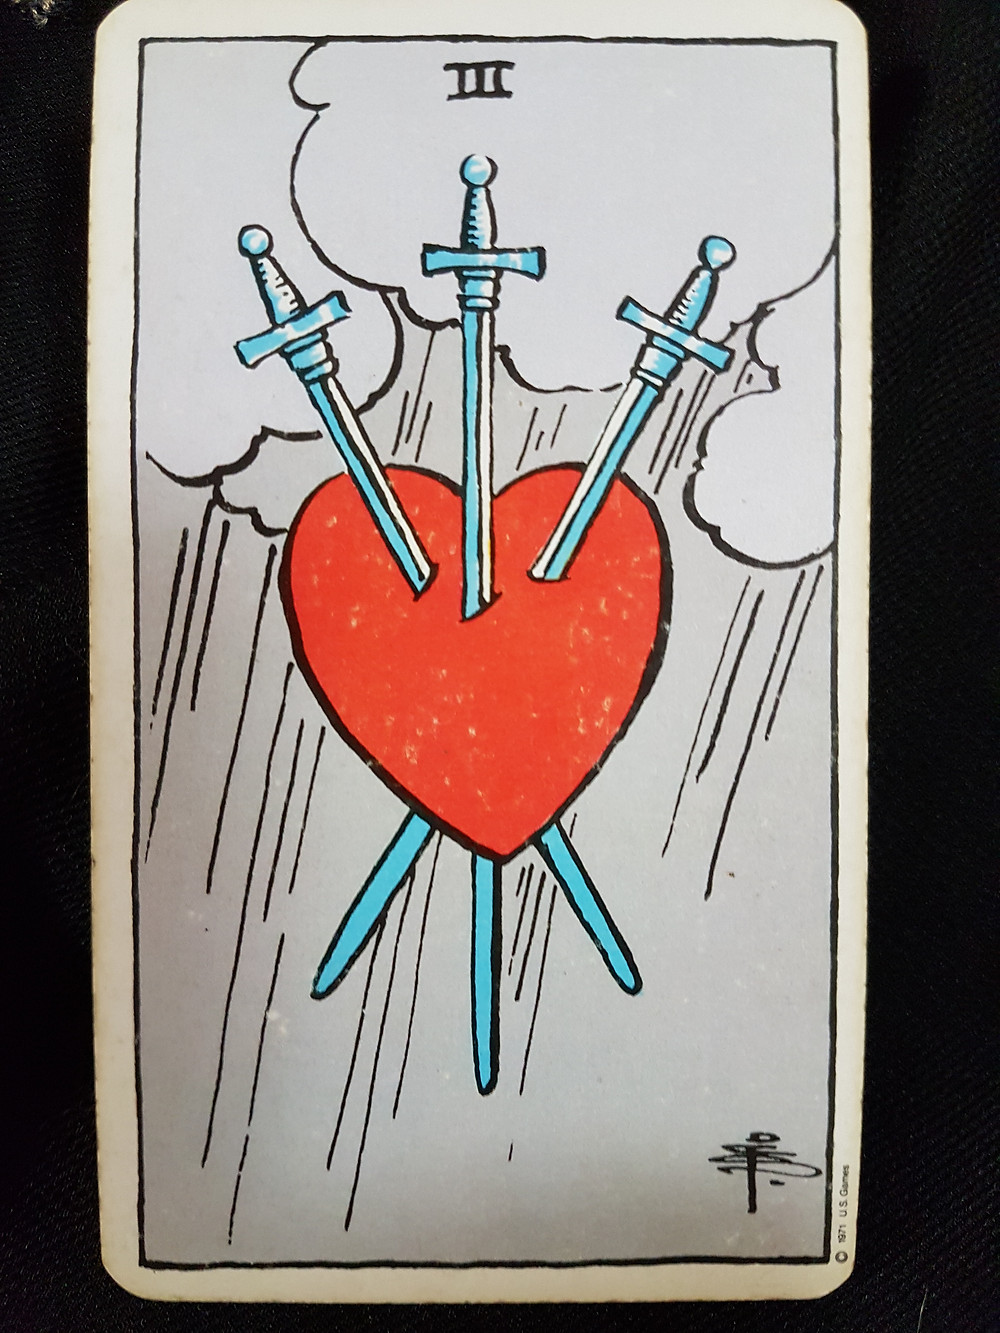 3 of Swords -creative expansion in the difficult suit of stress and strife -lynsreadings.com